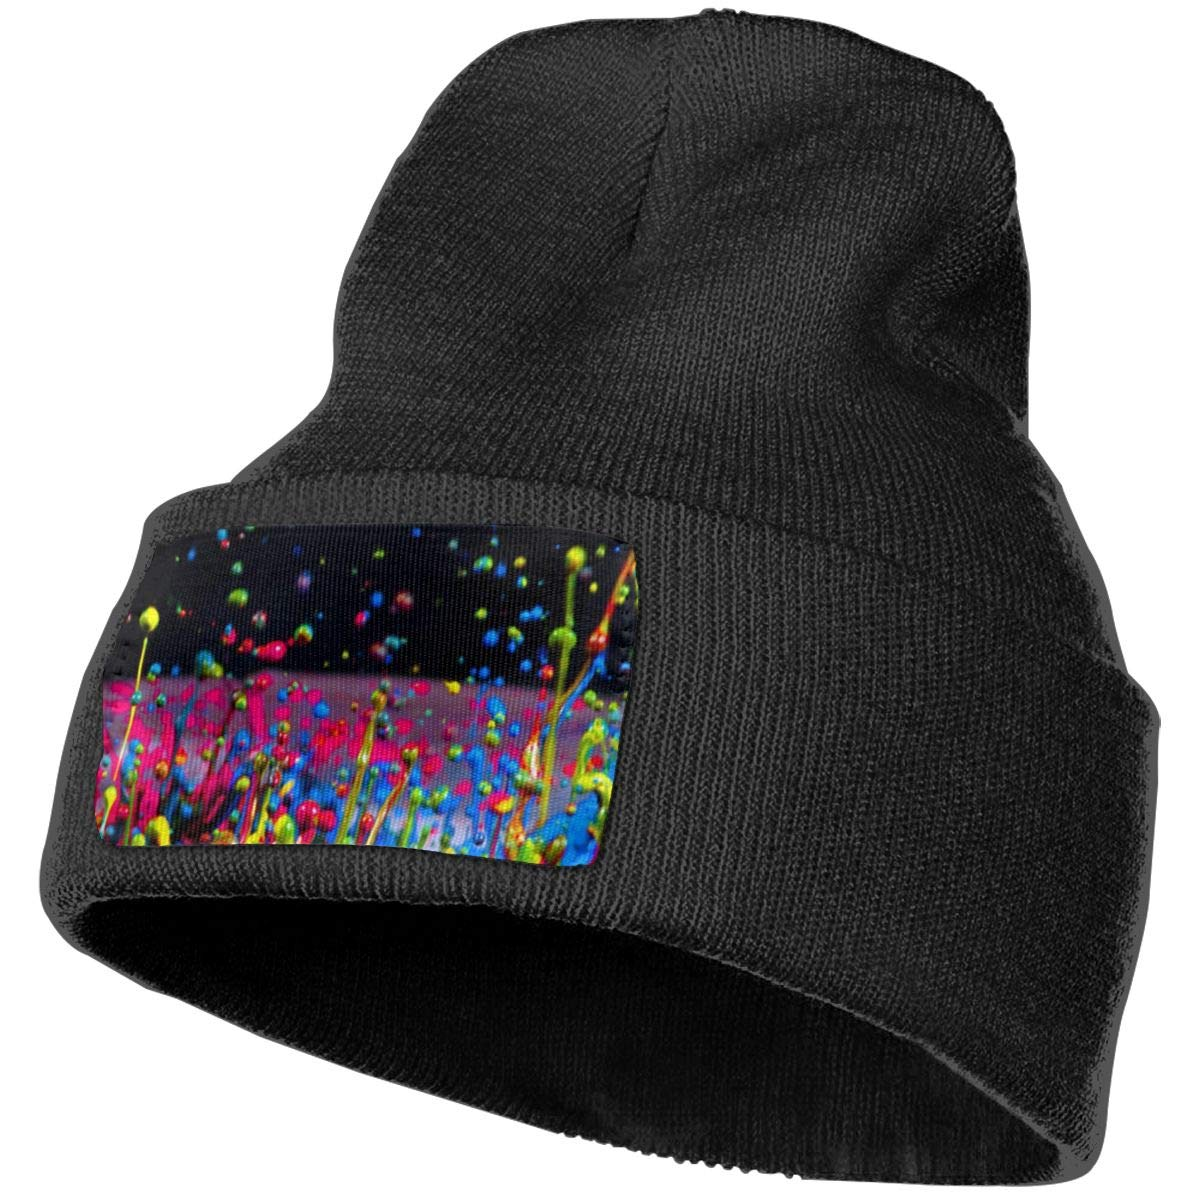 Colorful Raindrops Hat for Men and Women Winter Warm Hats Knit Slouchy Thick Skull Cap Black